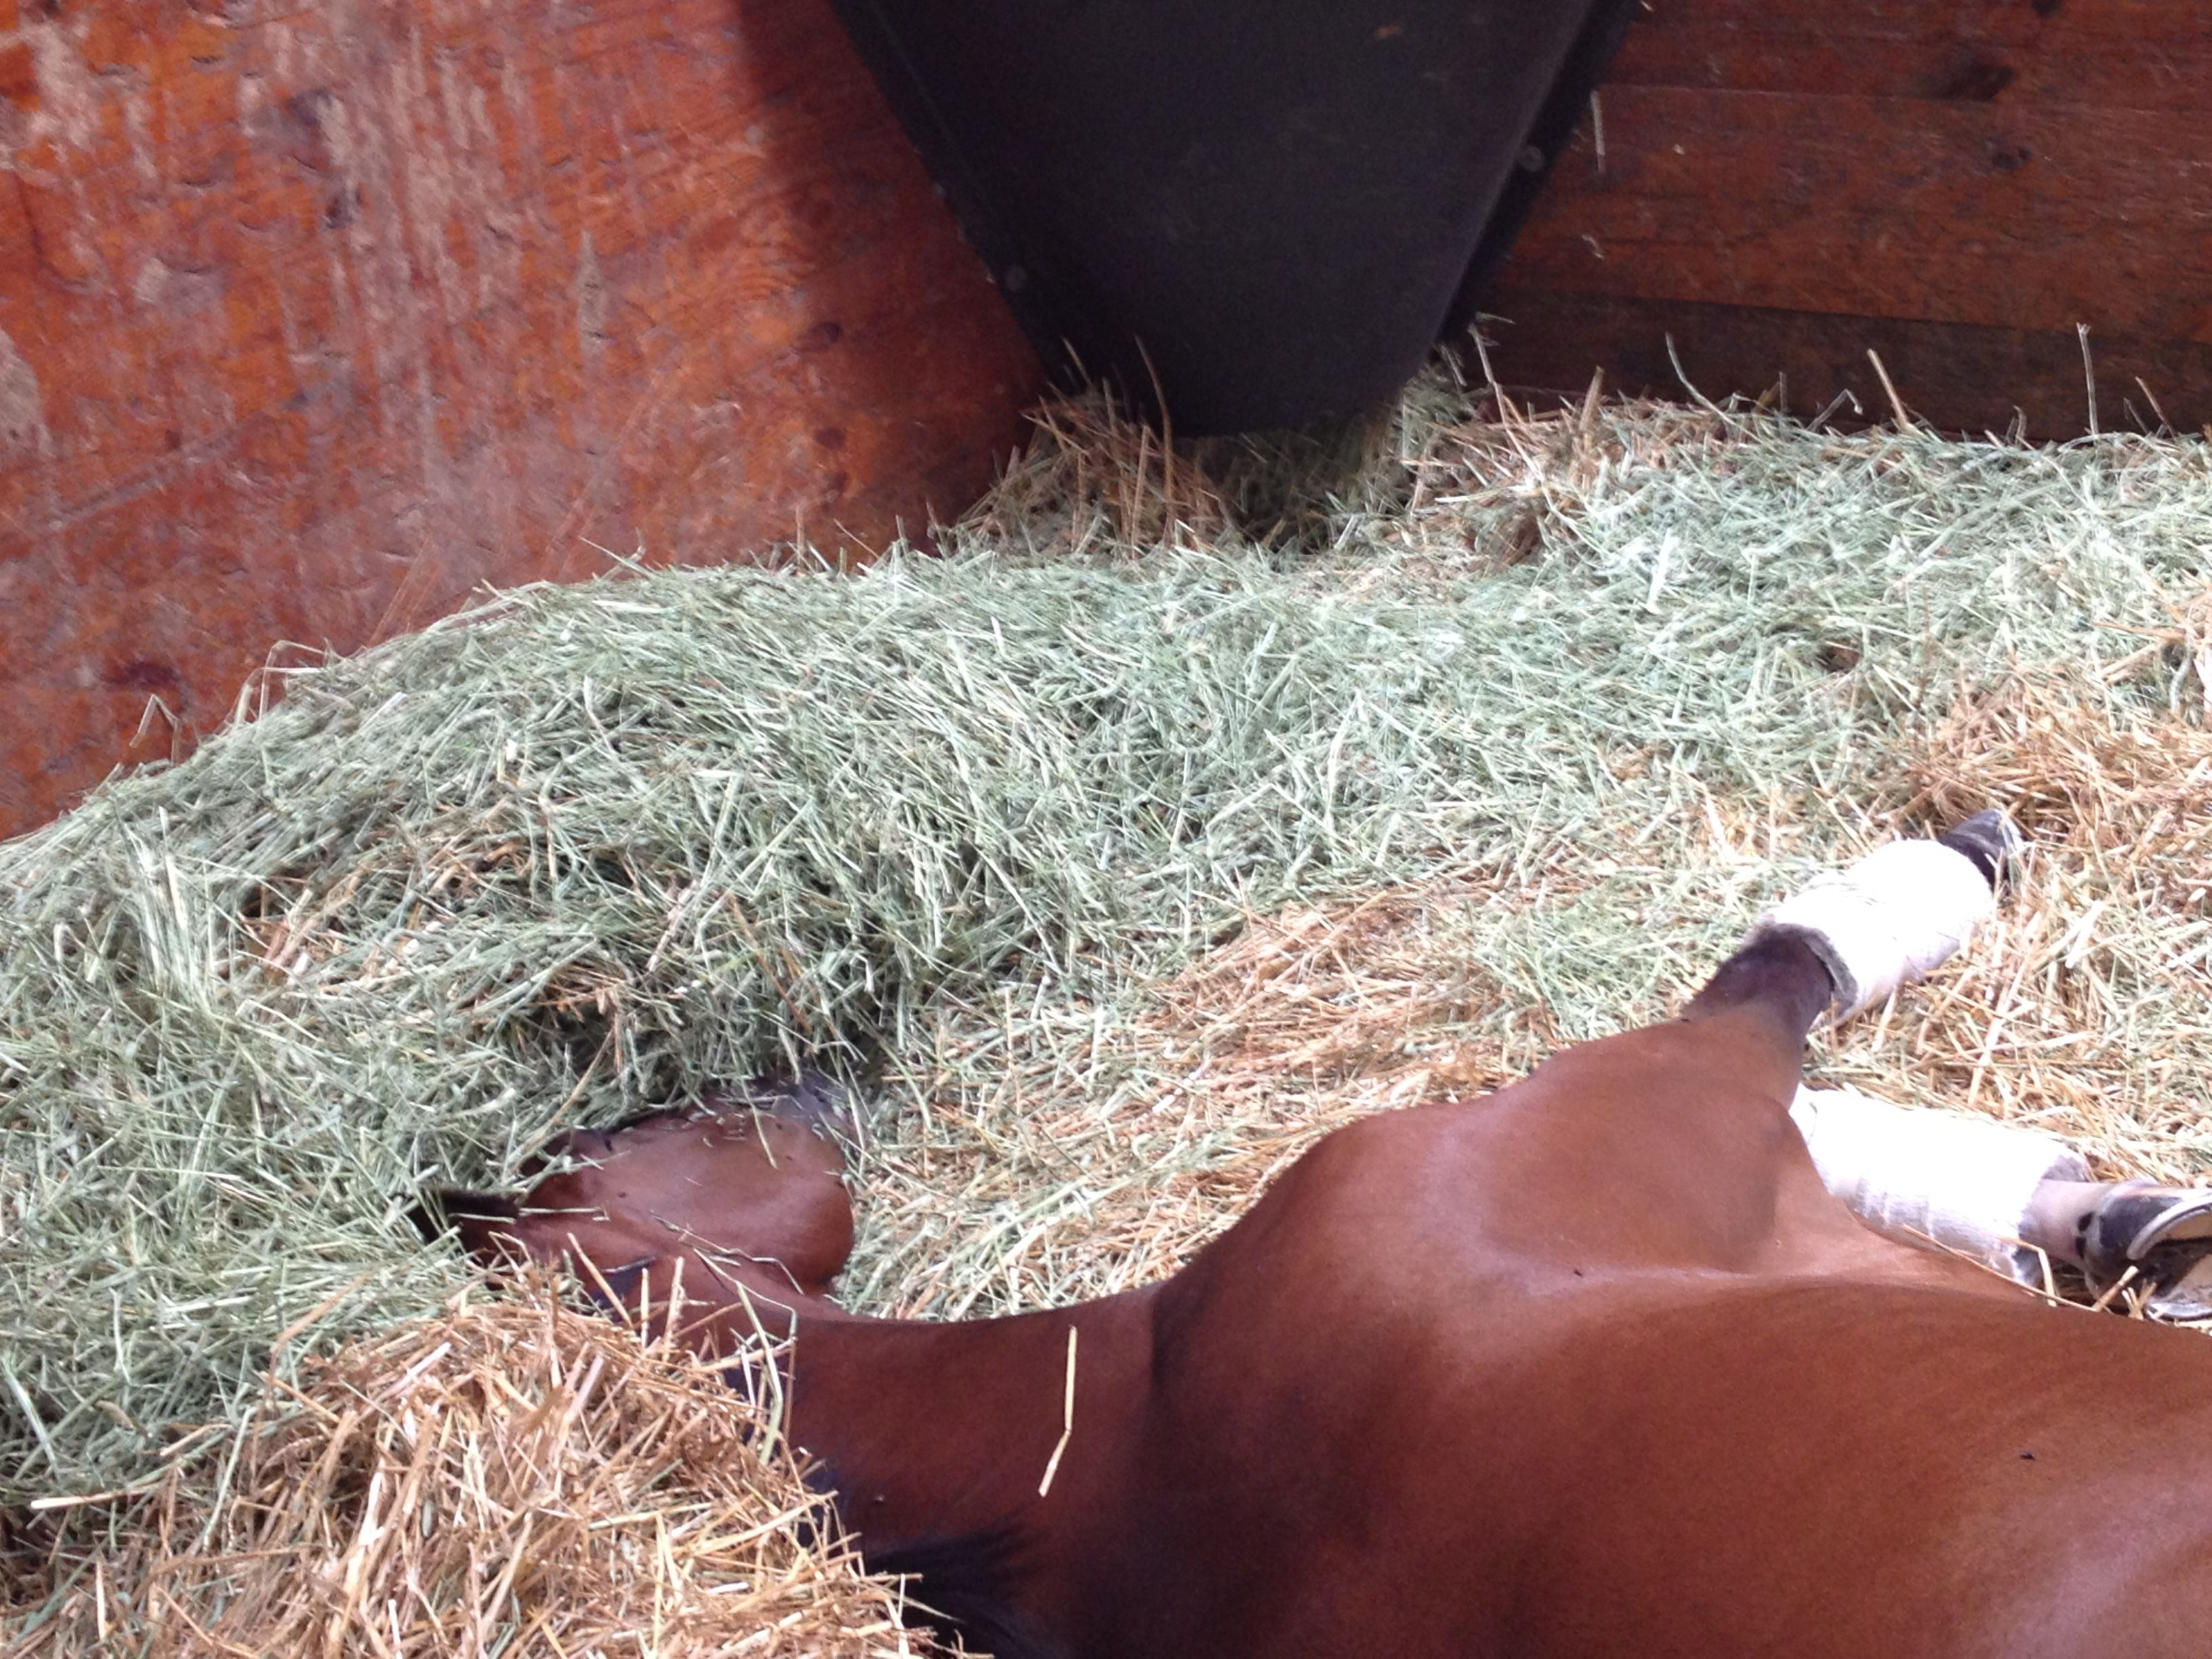 Our Megan Jones says Shalane could use a sleep mask so she doesn't have to get under the hay. | Horse racing